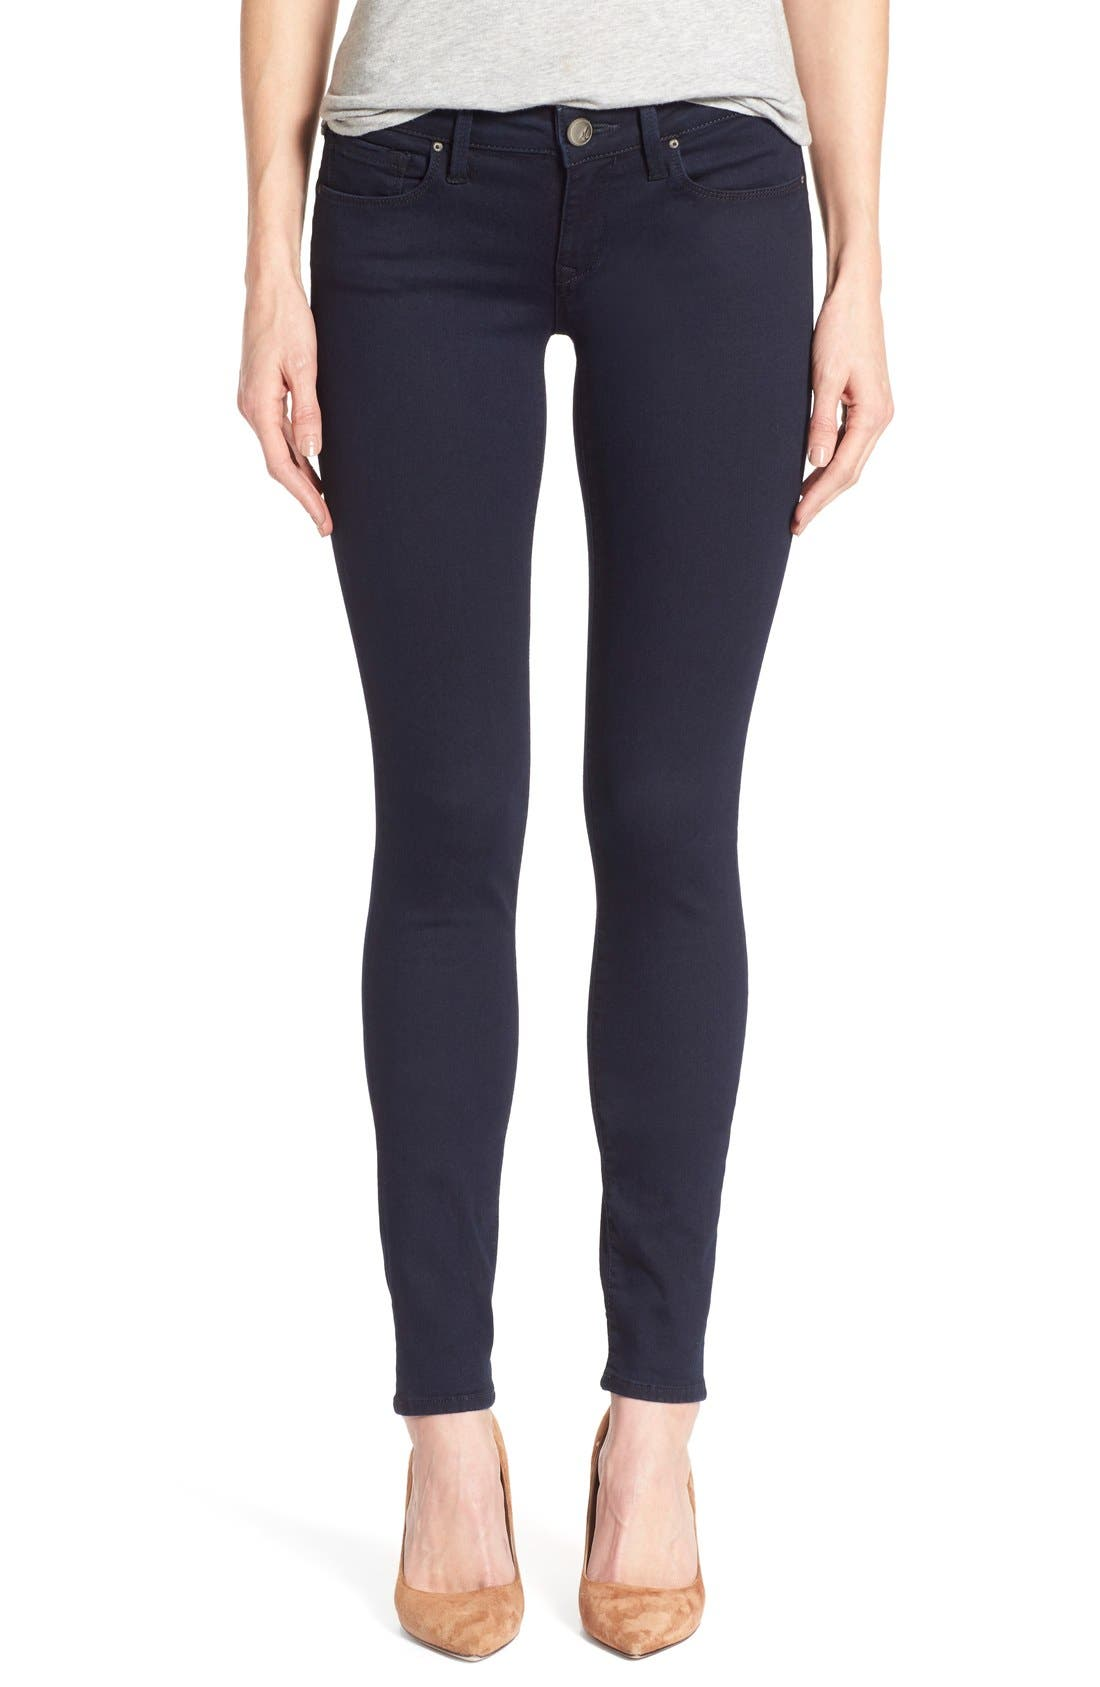 'Serena' Stretch Skinny Jeans,                             Main thumbnail 1, color,                             401